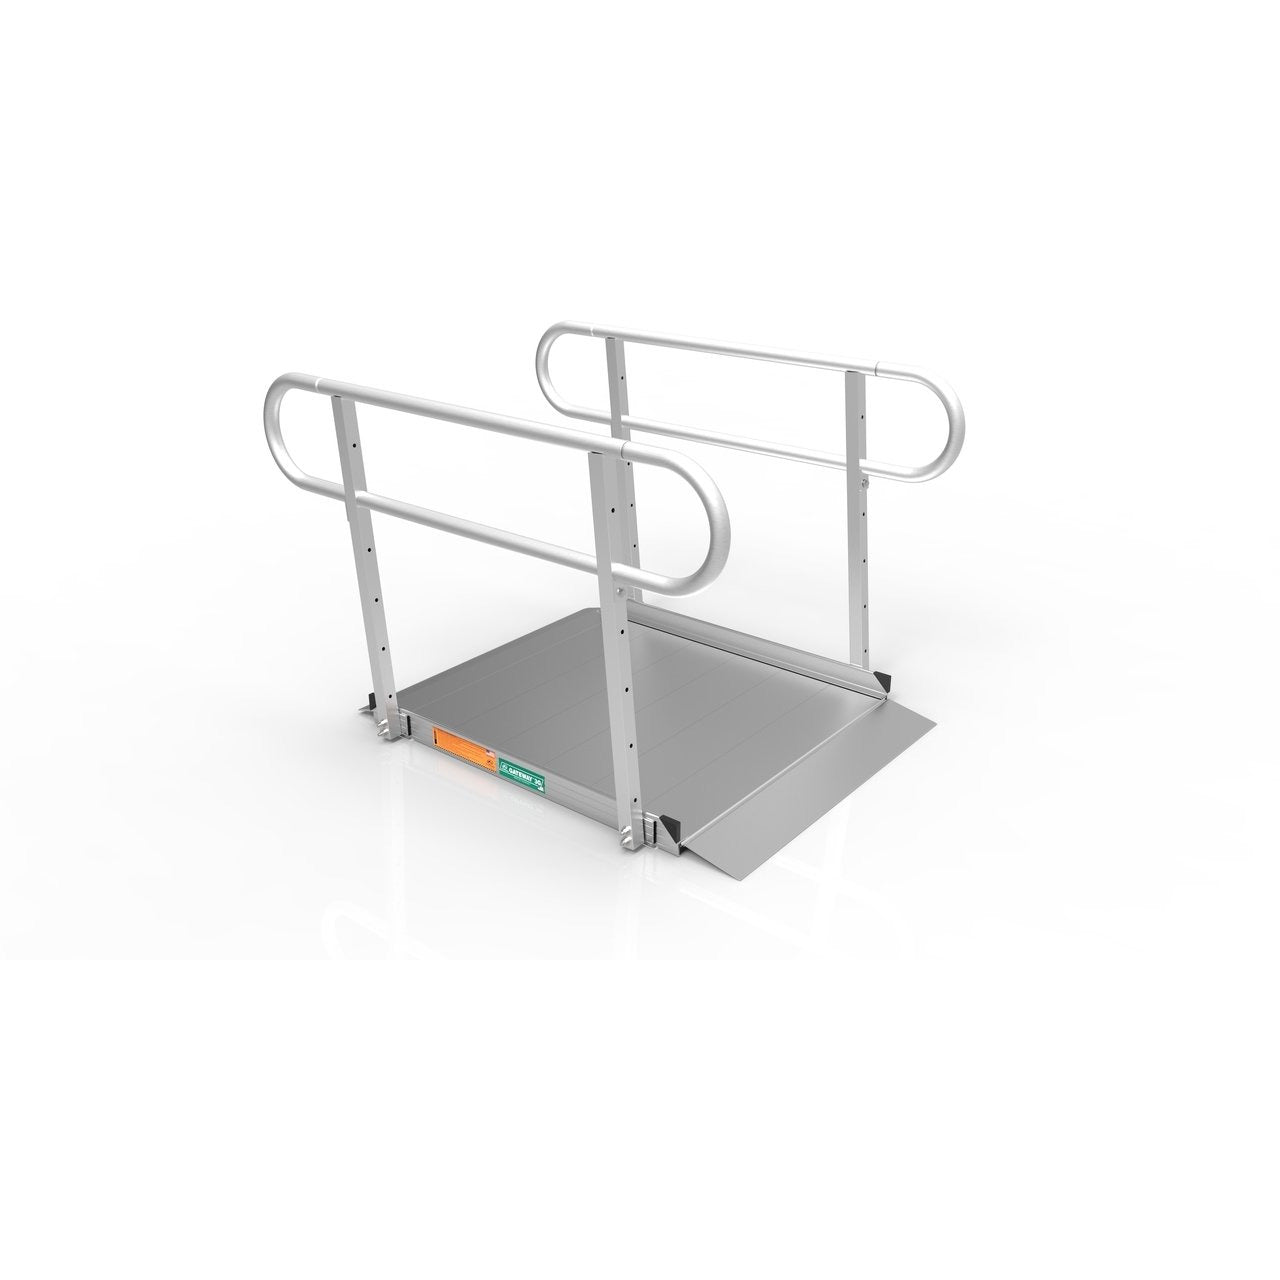 Ez-Access GATEWAY 3G Ramp with Two-line Handrails